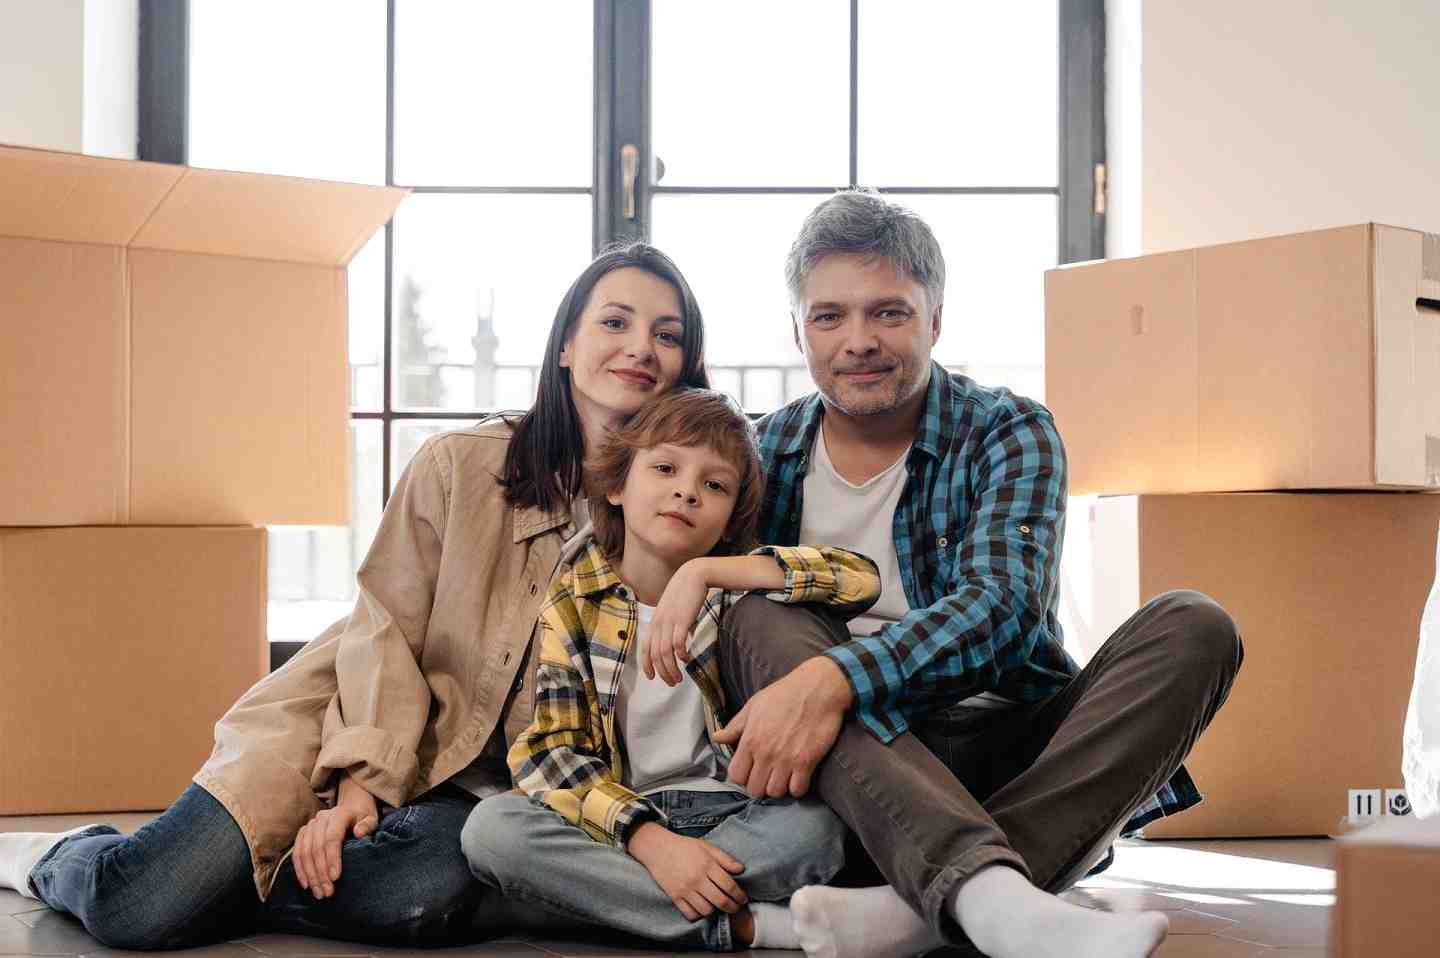 Read more about the article Moving to a New Home with Children on the Autism Spectrum